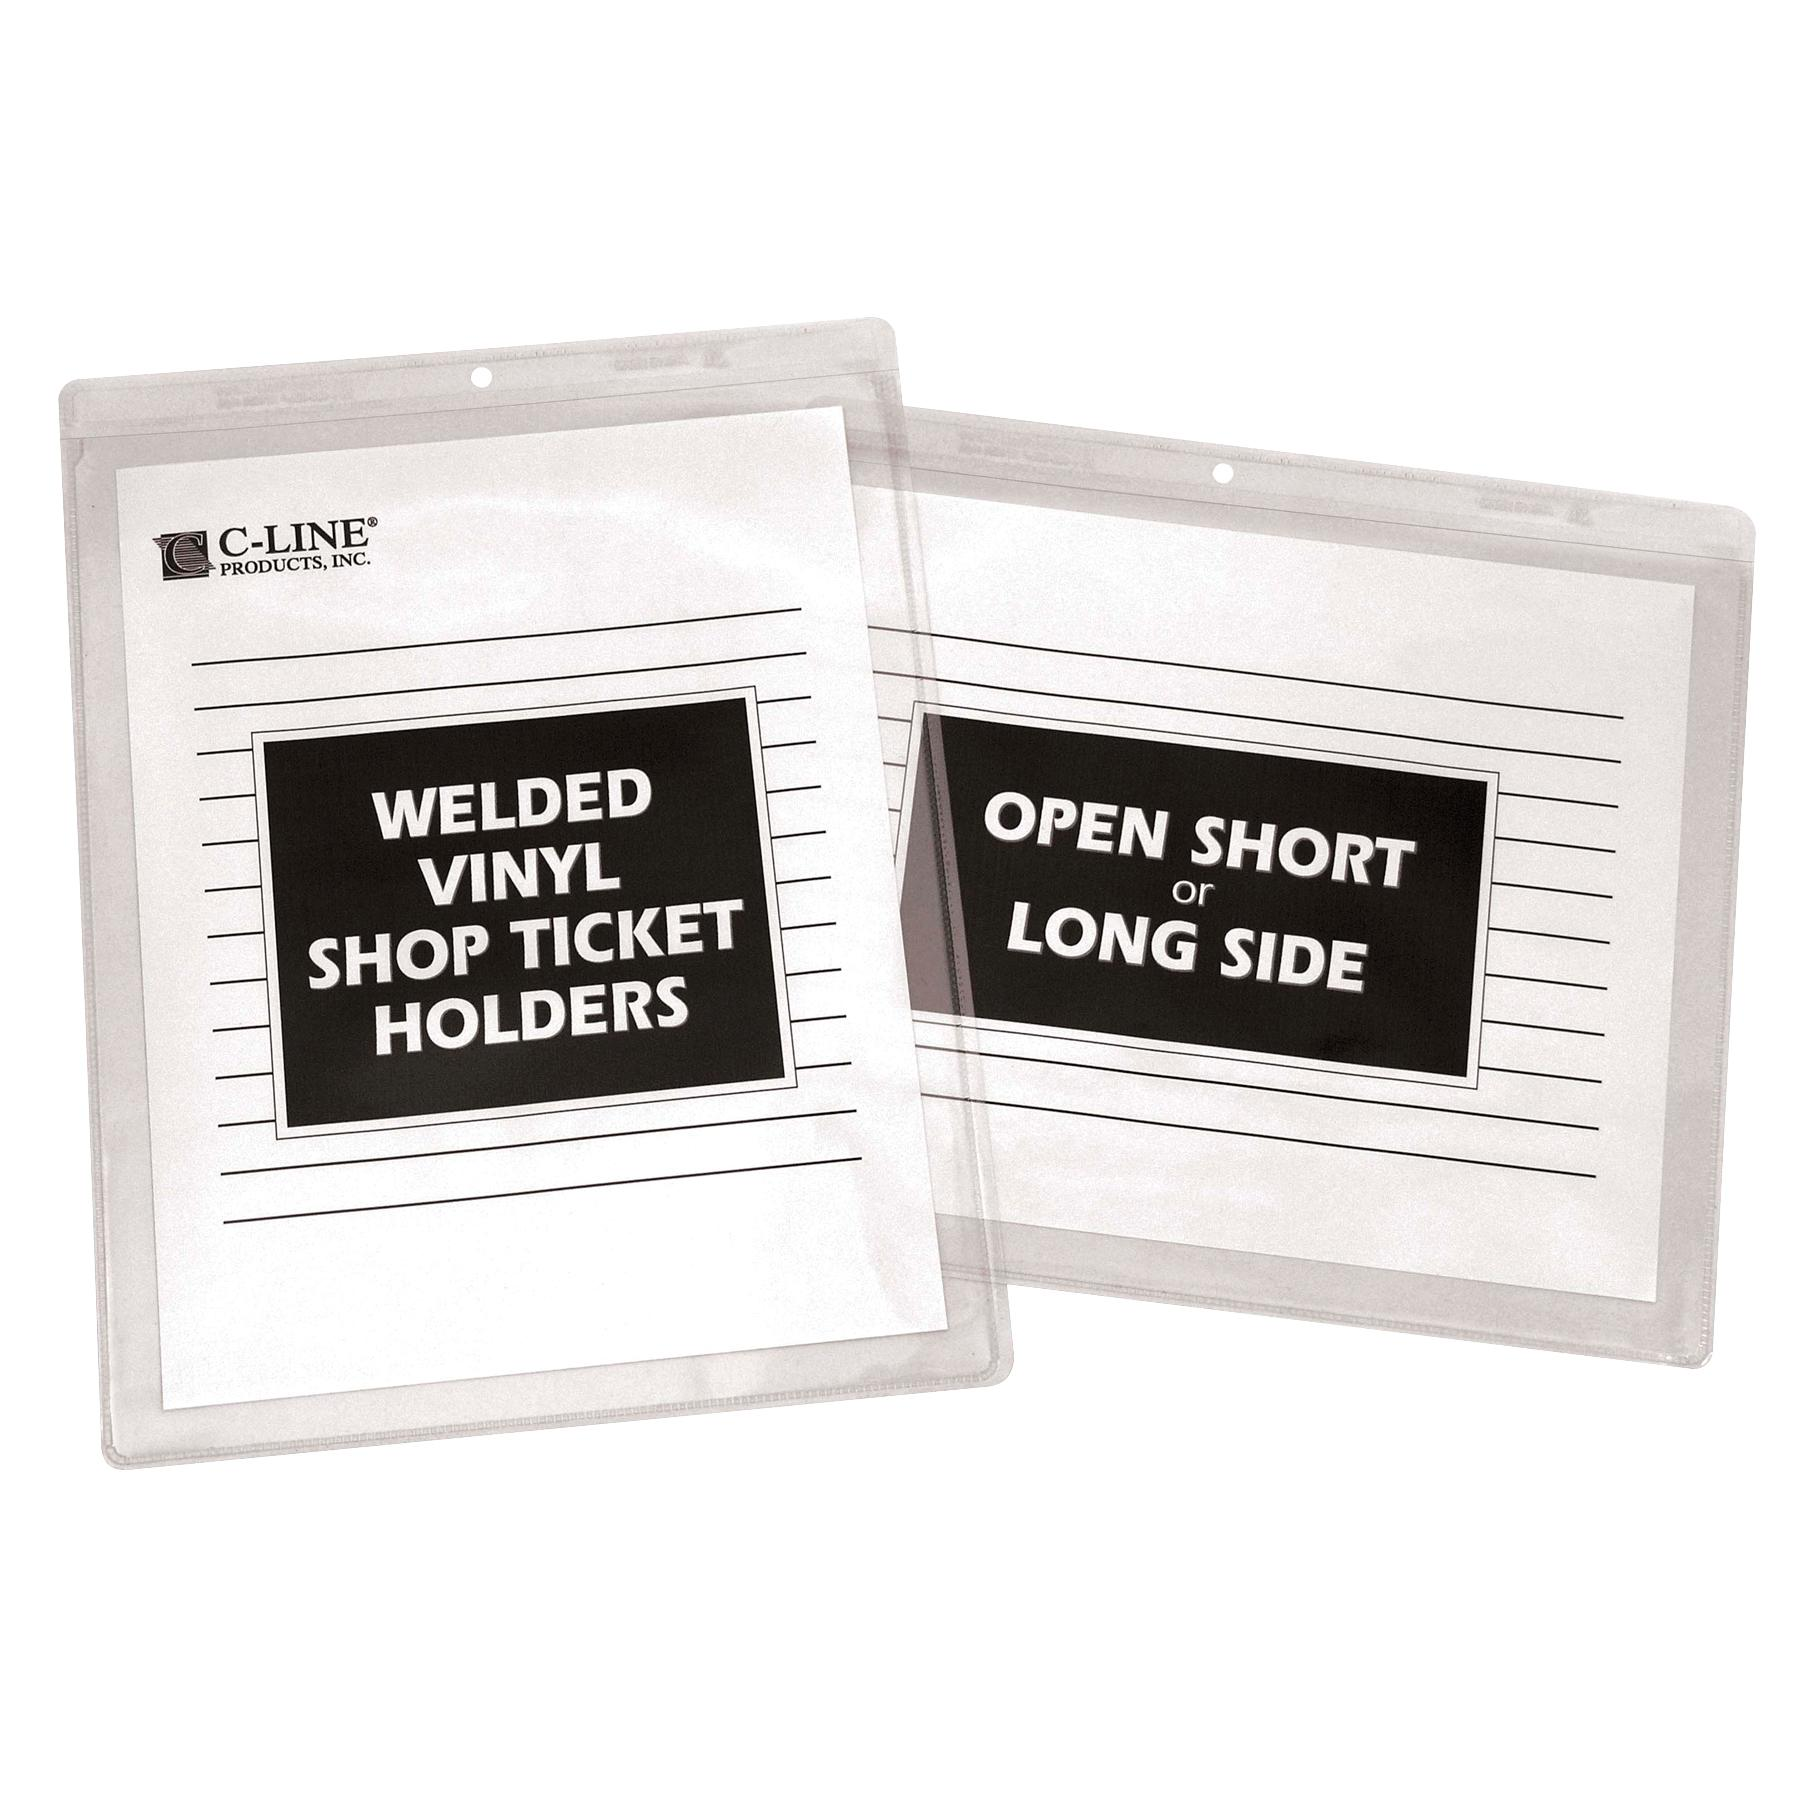 c line stitched shop ticket holders both sides clear 9 x 12 inches 25 per box. Black Bedroom Furniture Sets. Home Design Ideas